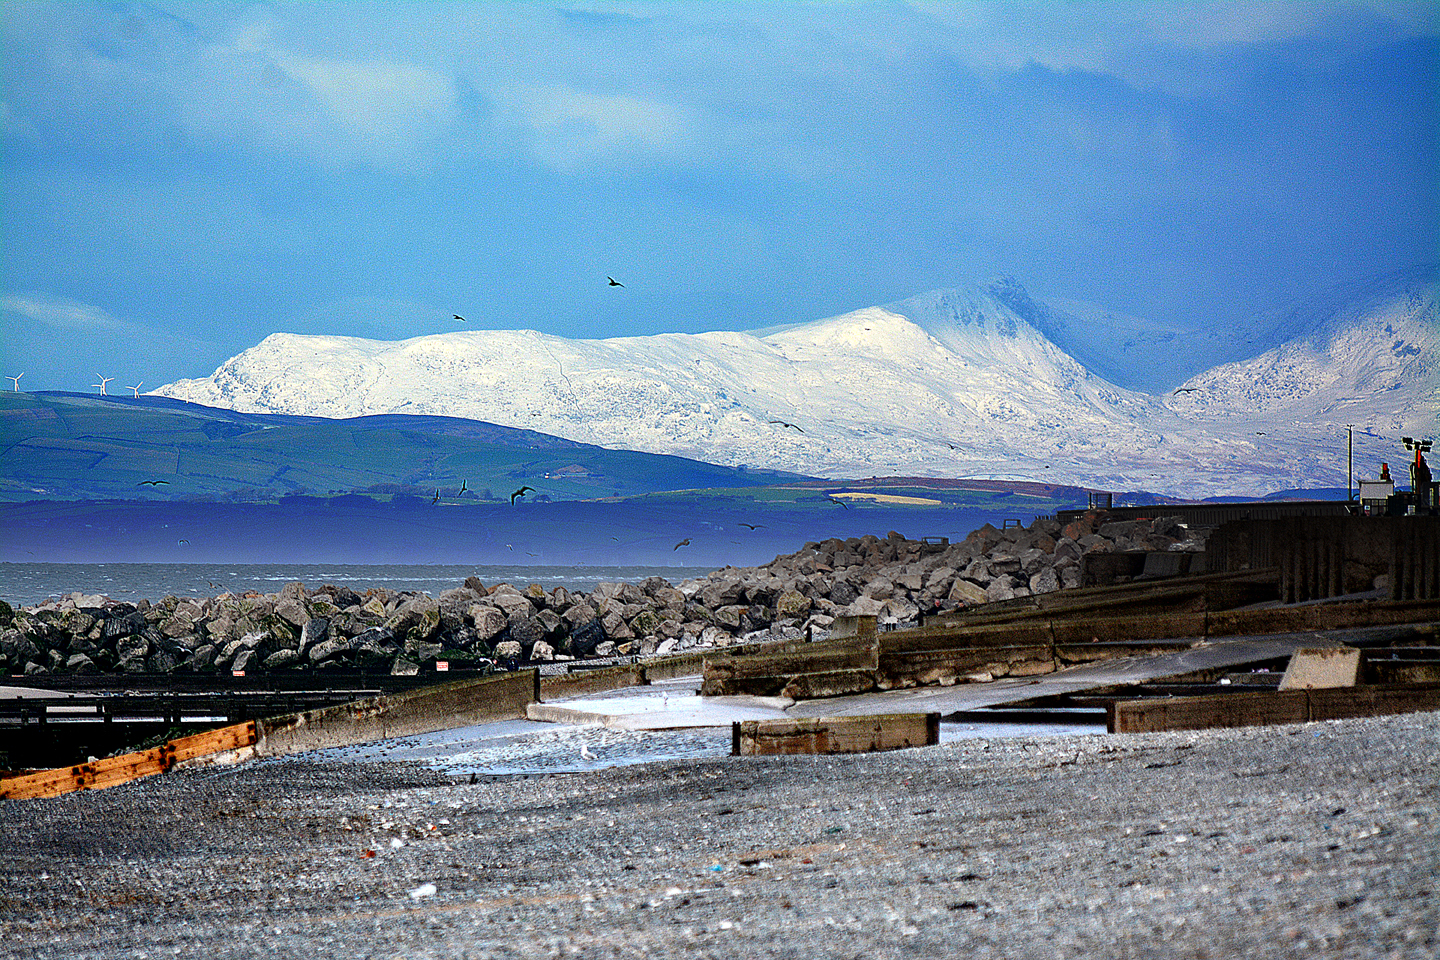 View of Lakes in the snow from Cleveleys